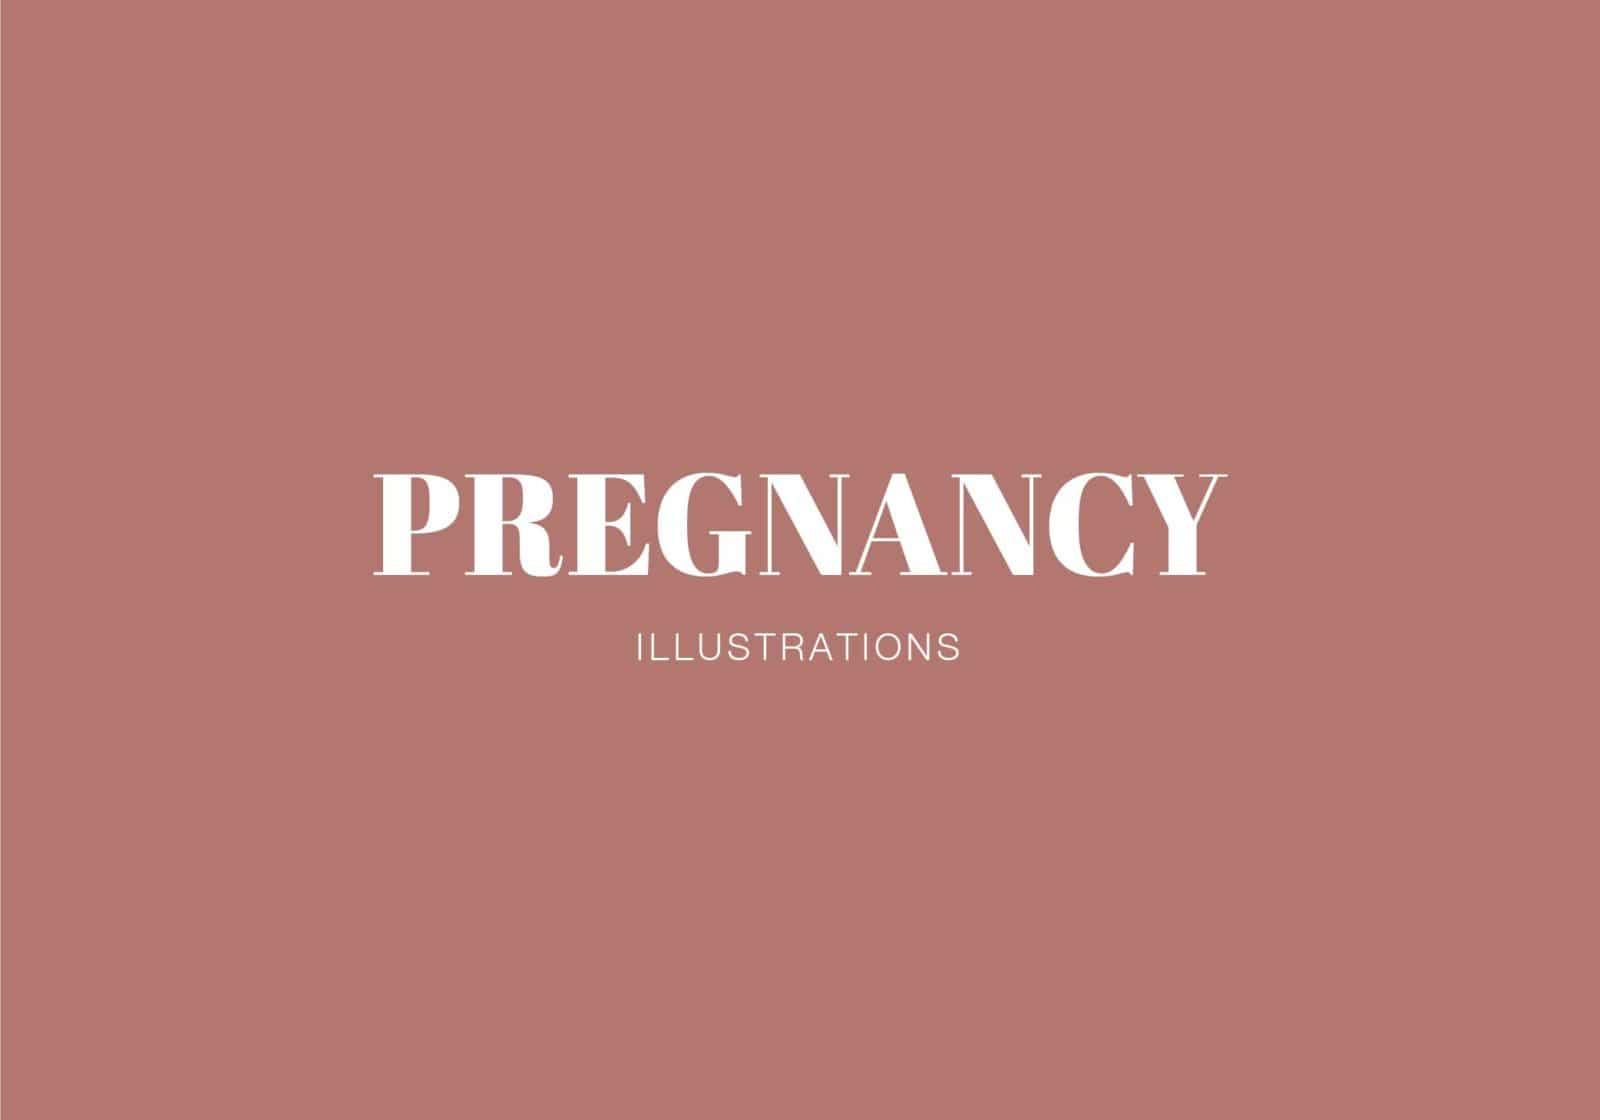 designs by duvet days_category_pregnancy